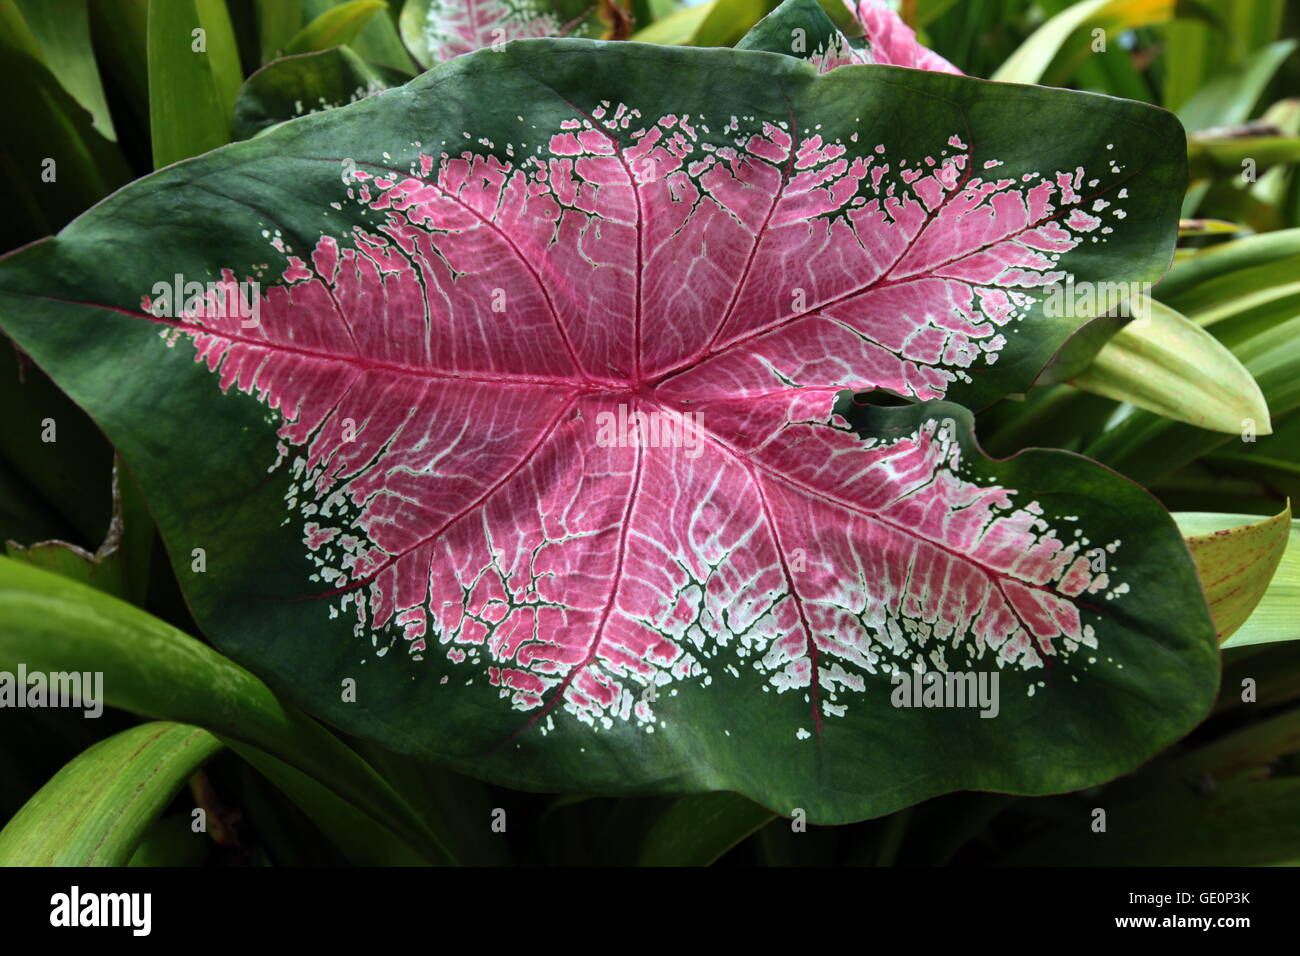 tropical flowers in the city of Bandar seri Begawan in the country of Brunei Darussalam on Borneo in Southeastasia. - Stock Image